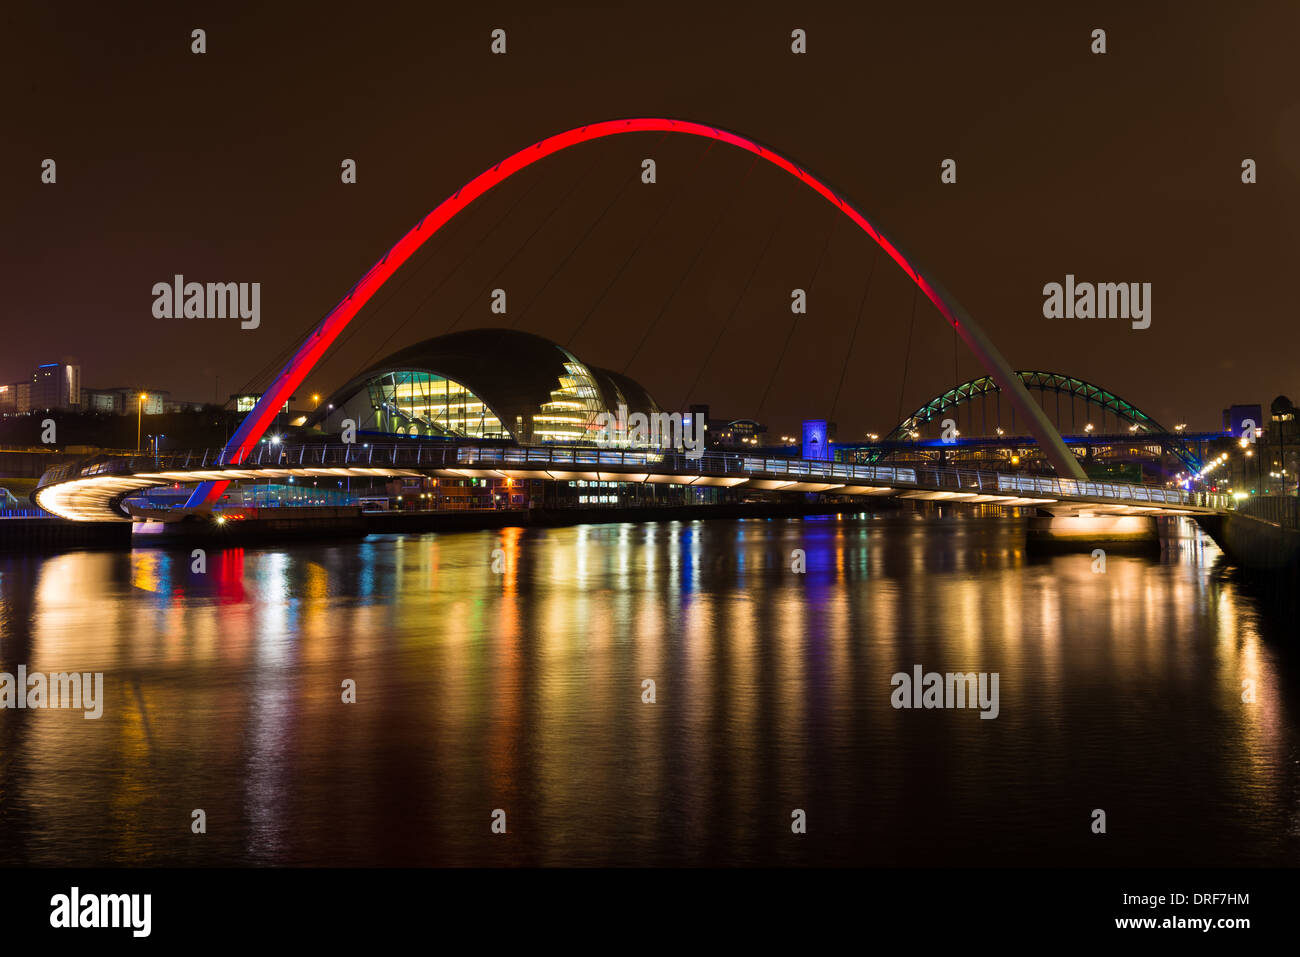 Nightshot on River Tyne at Newcastle, UK. Showing the millenium and tyne bridges, and the sage centre. - Stock Image